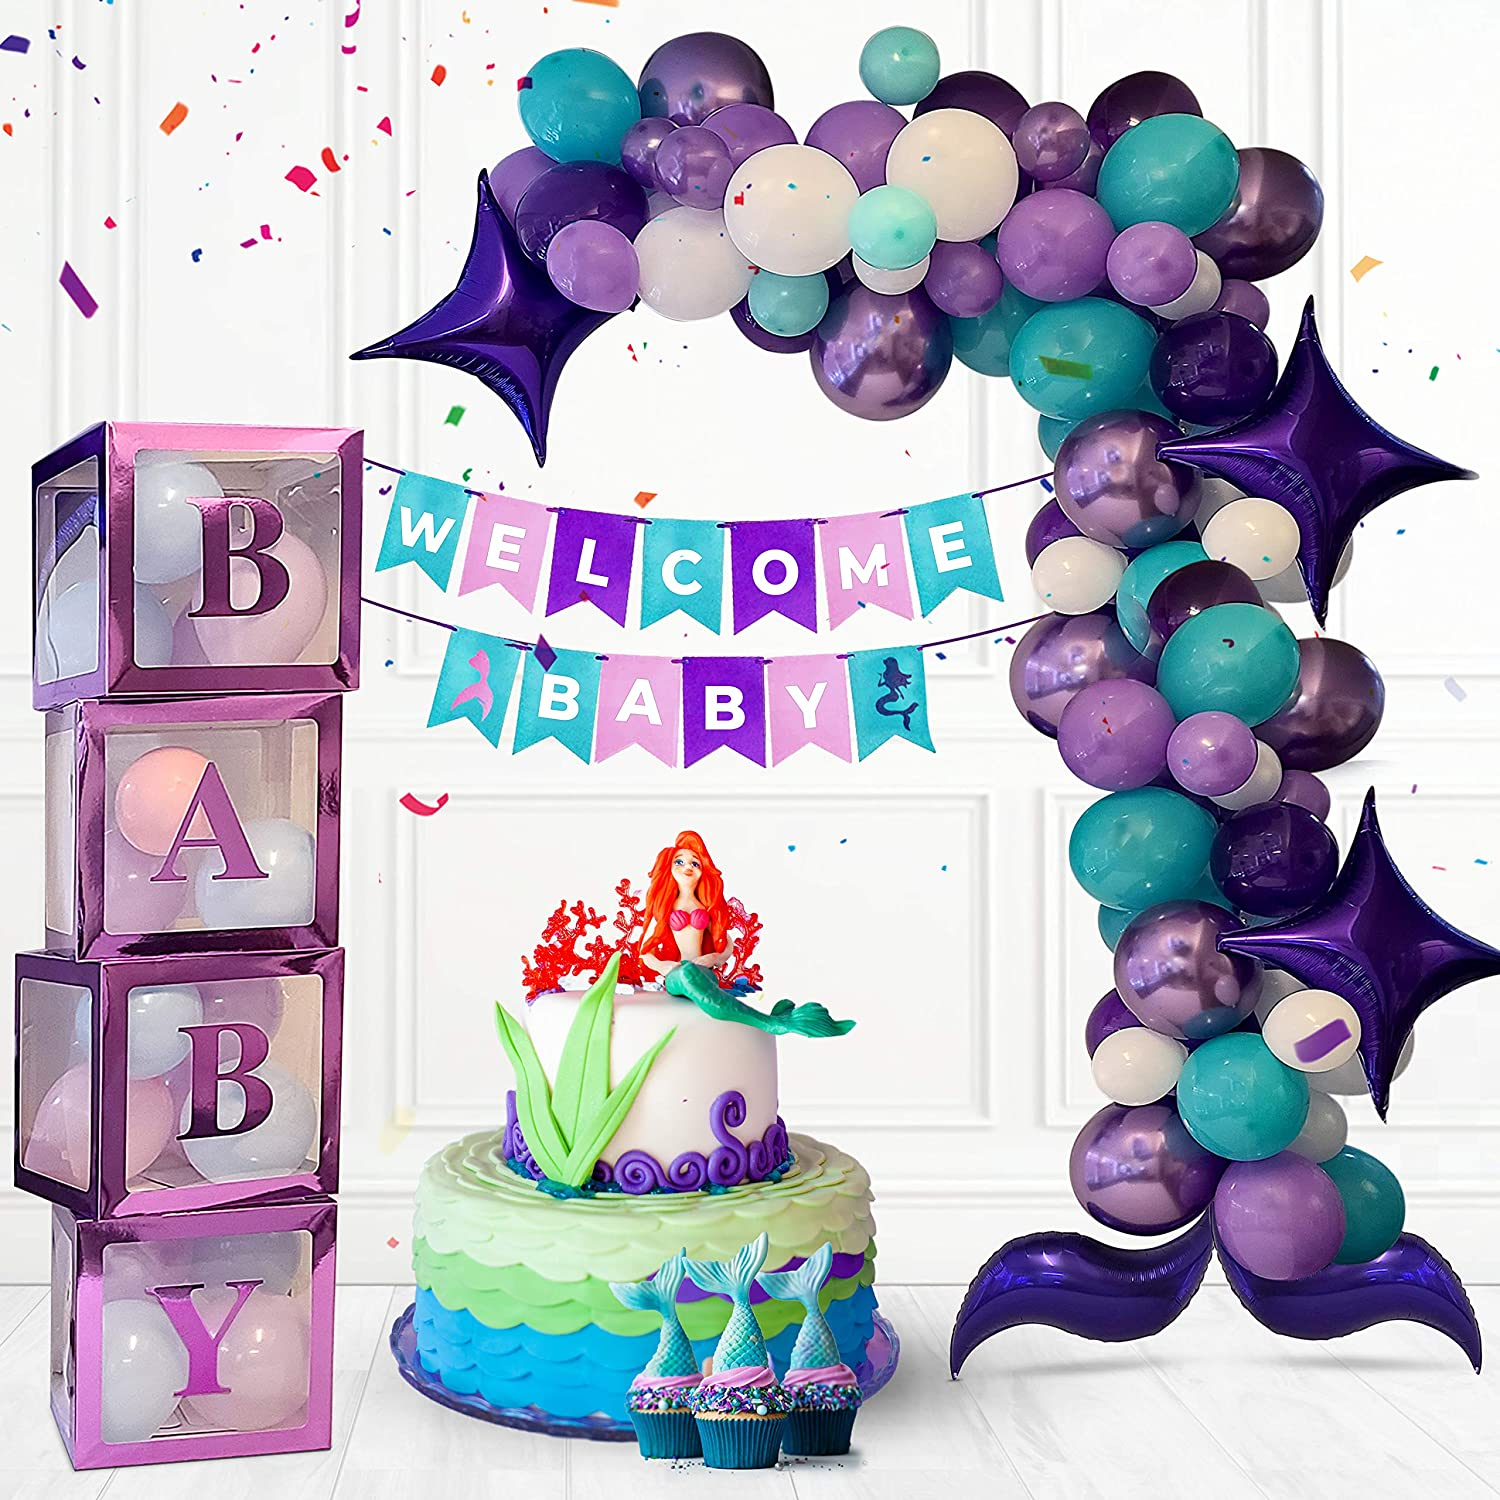 Mermaid Birthday Party Supplies Purple Girl Baby Boxes Decorations for Baby Shower with Balloon Arch Partibear 93 Pieces Mermaid Party Decorations